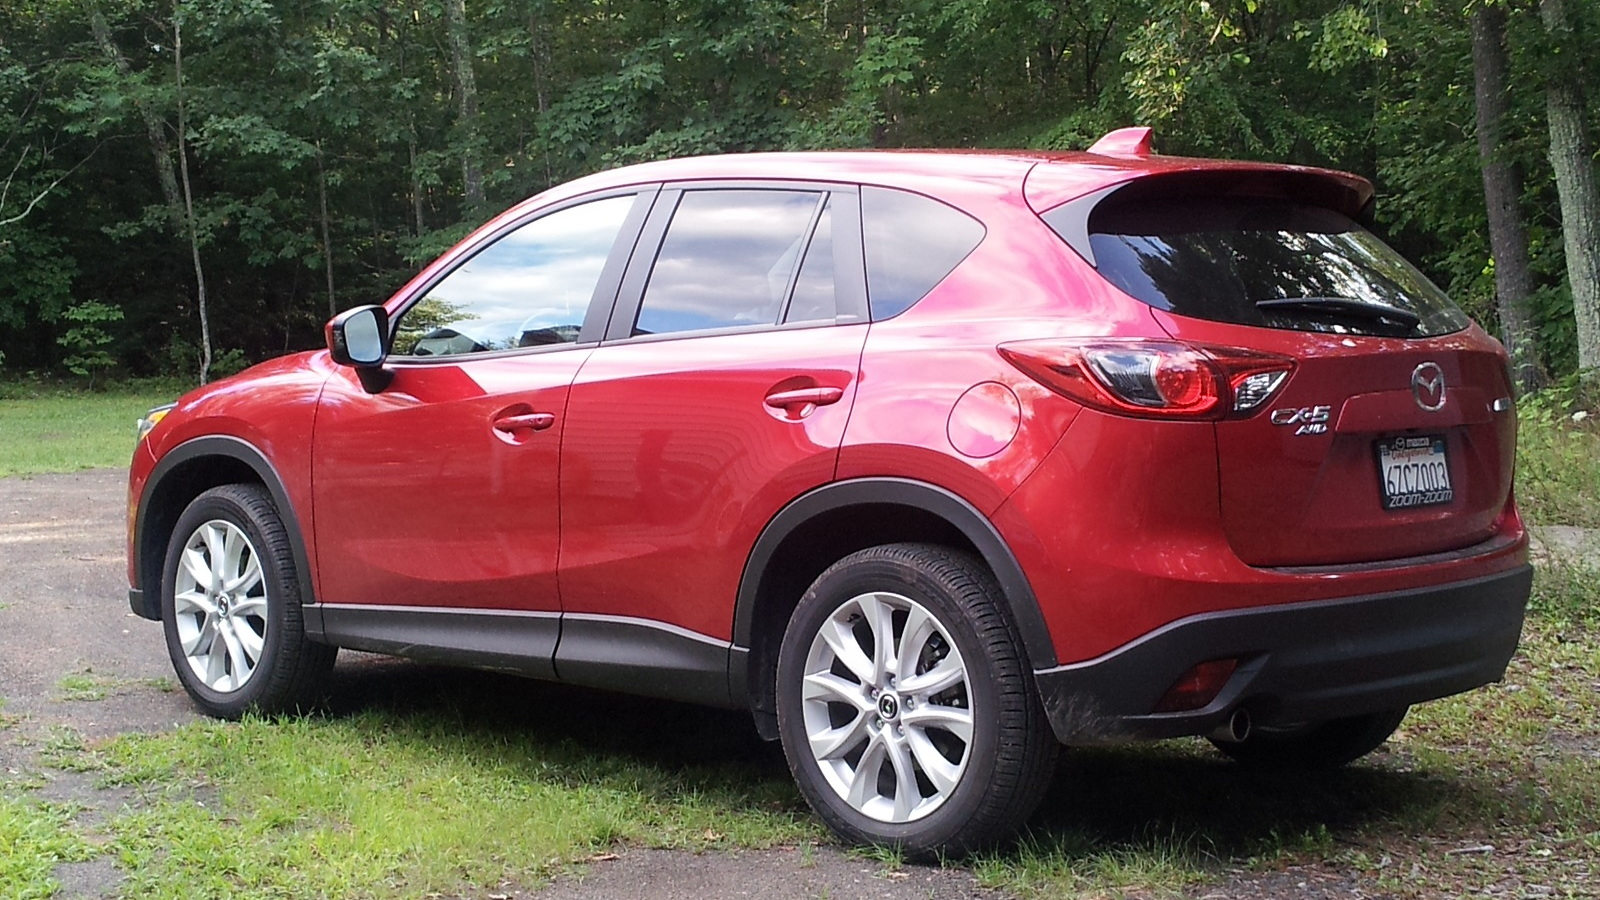 2014 Mazda CX-5 Grand Touring AWD, Catskill Mountains, NY, Aug 2013